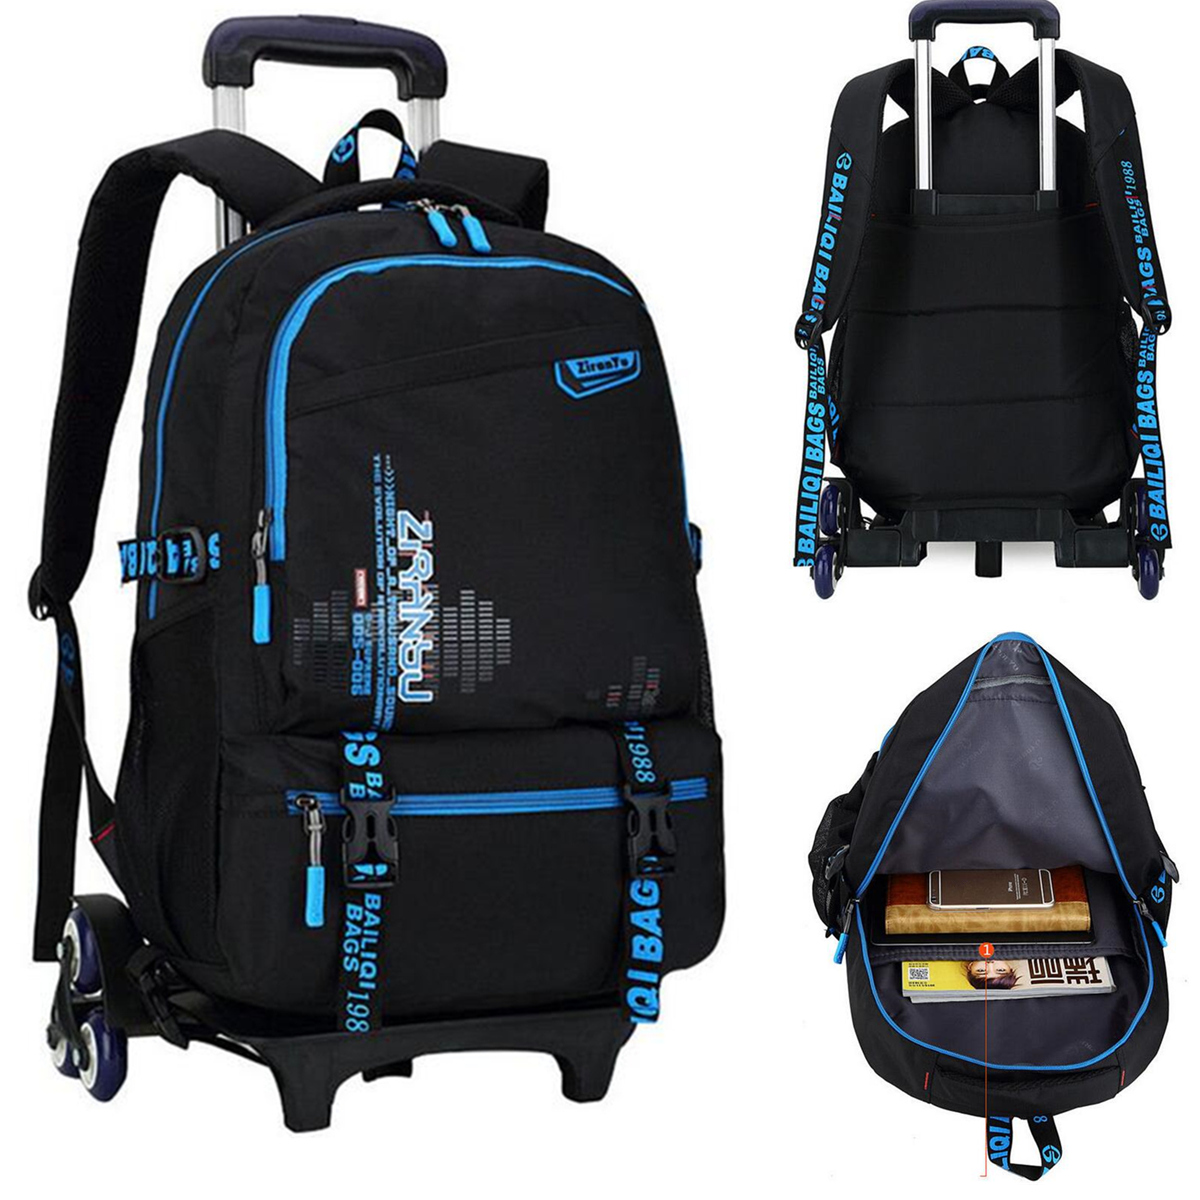 Travel Rucksack Details About 6 Wheels Kids Trolley School Bag Children Removable Backpack Travel Rucksack